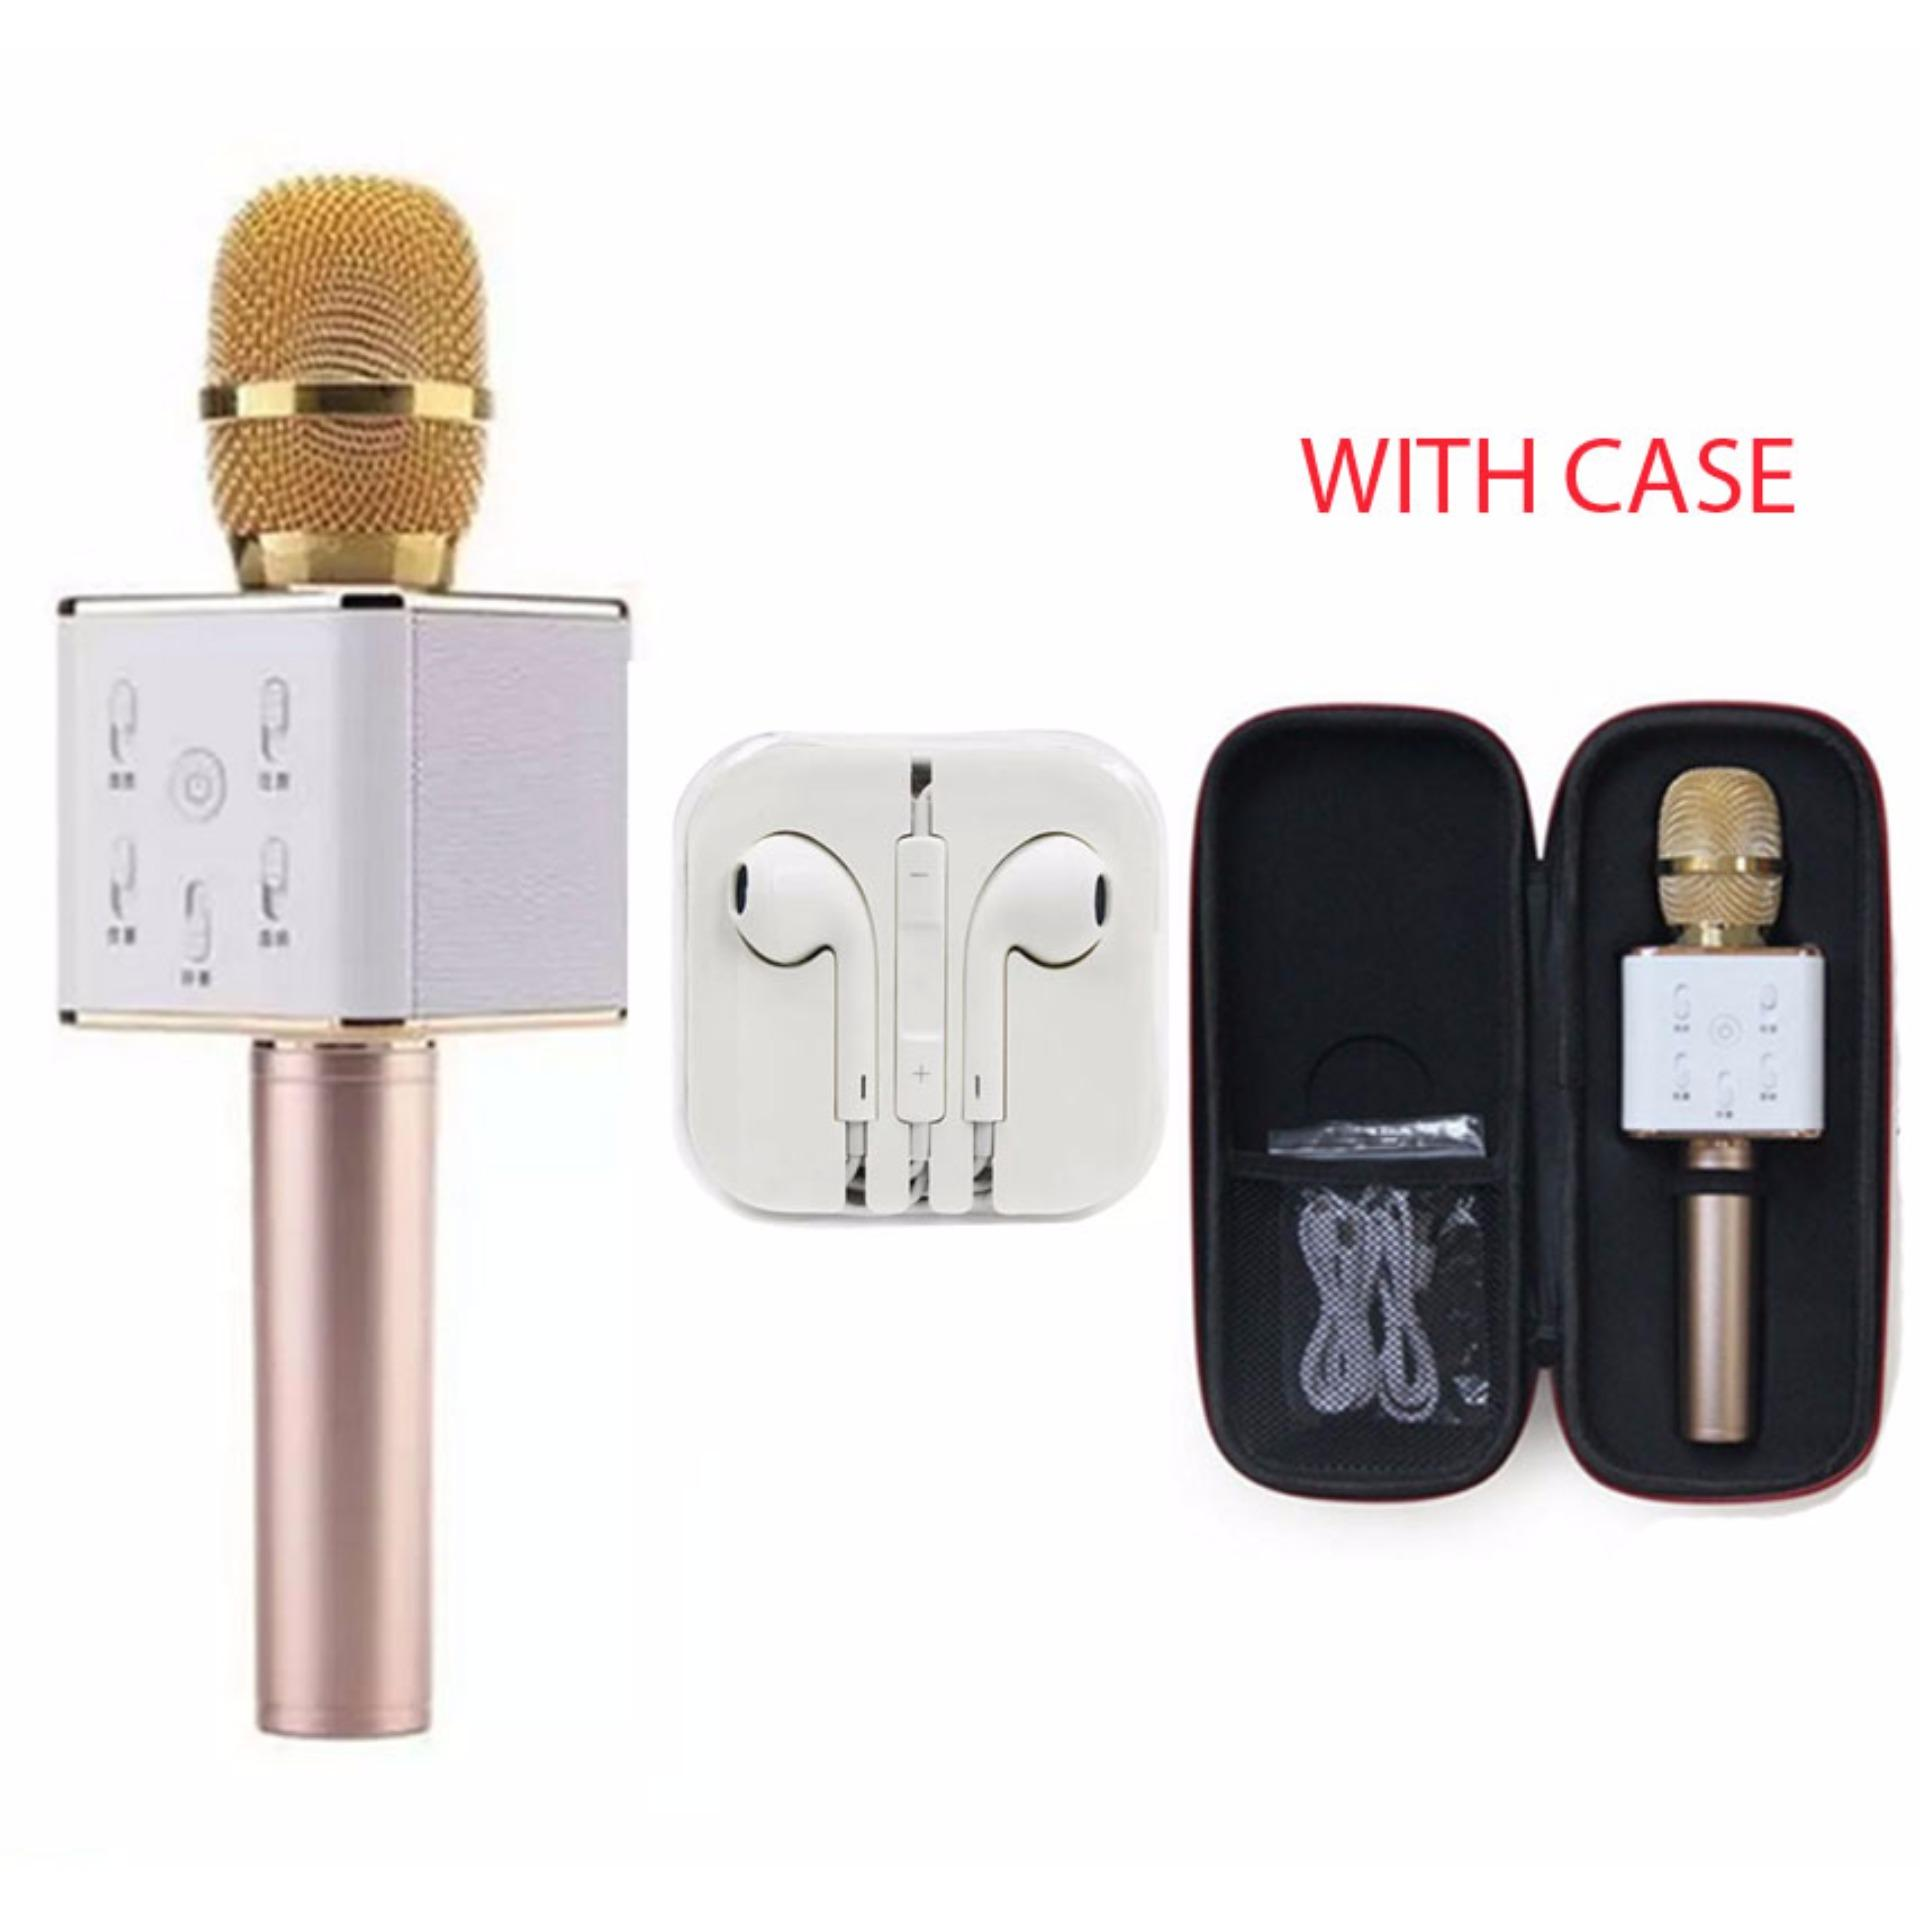 TUXUN Q7 Wireless KTV Karaoke Microphone Bluetooth Speaker(Gold)with Headset White